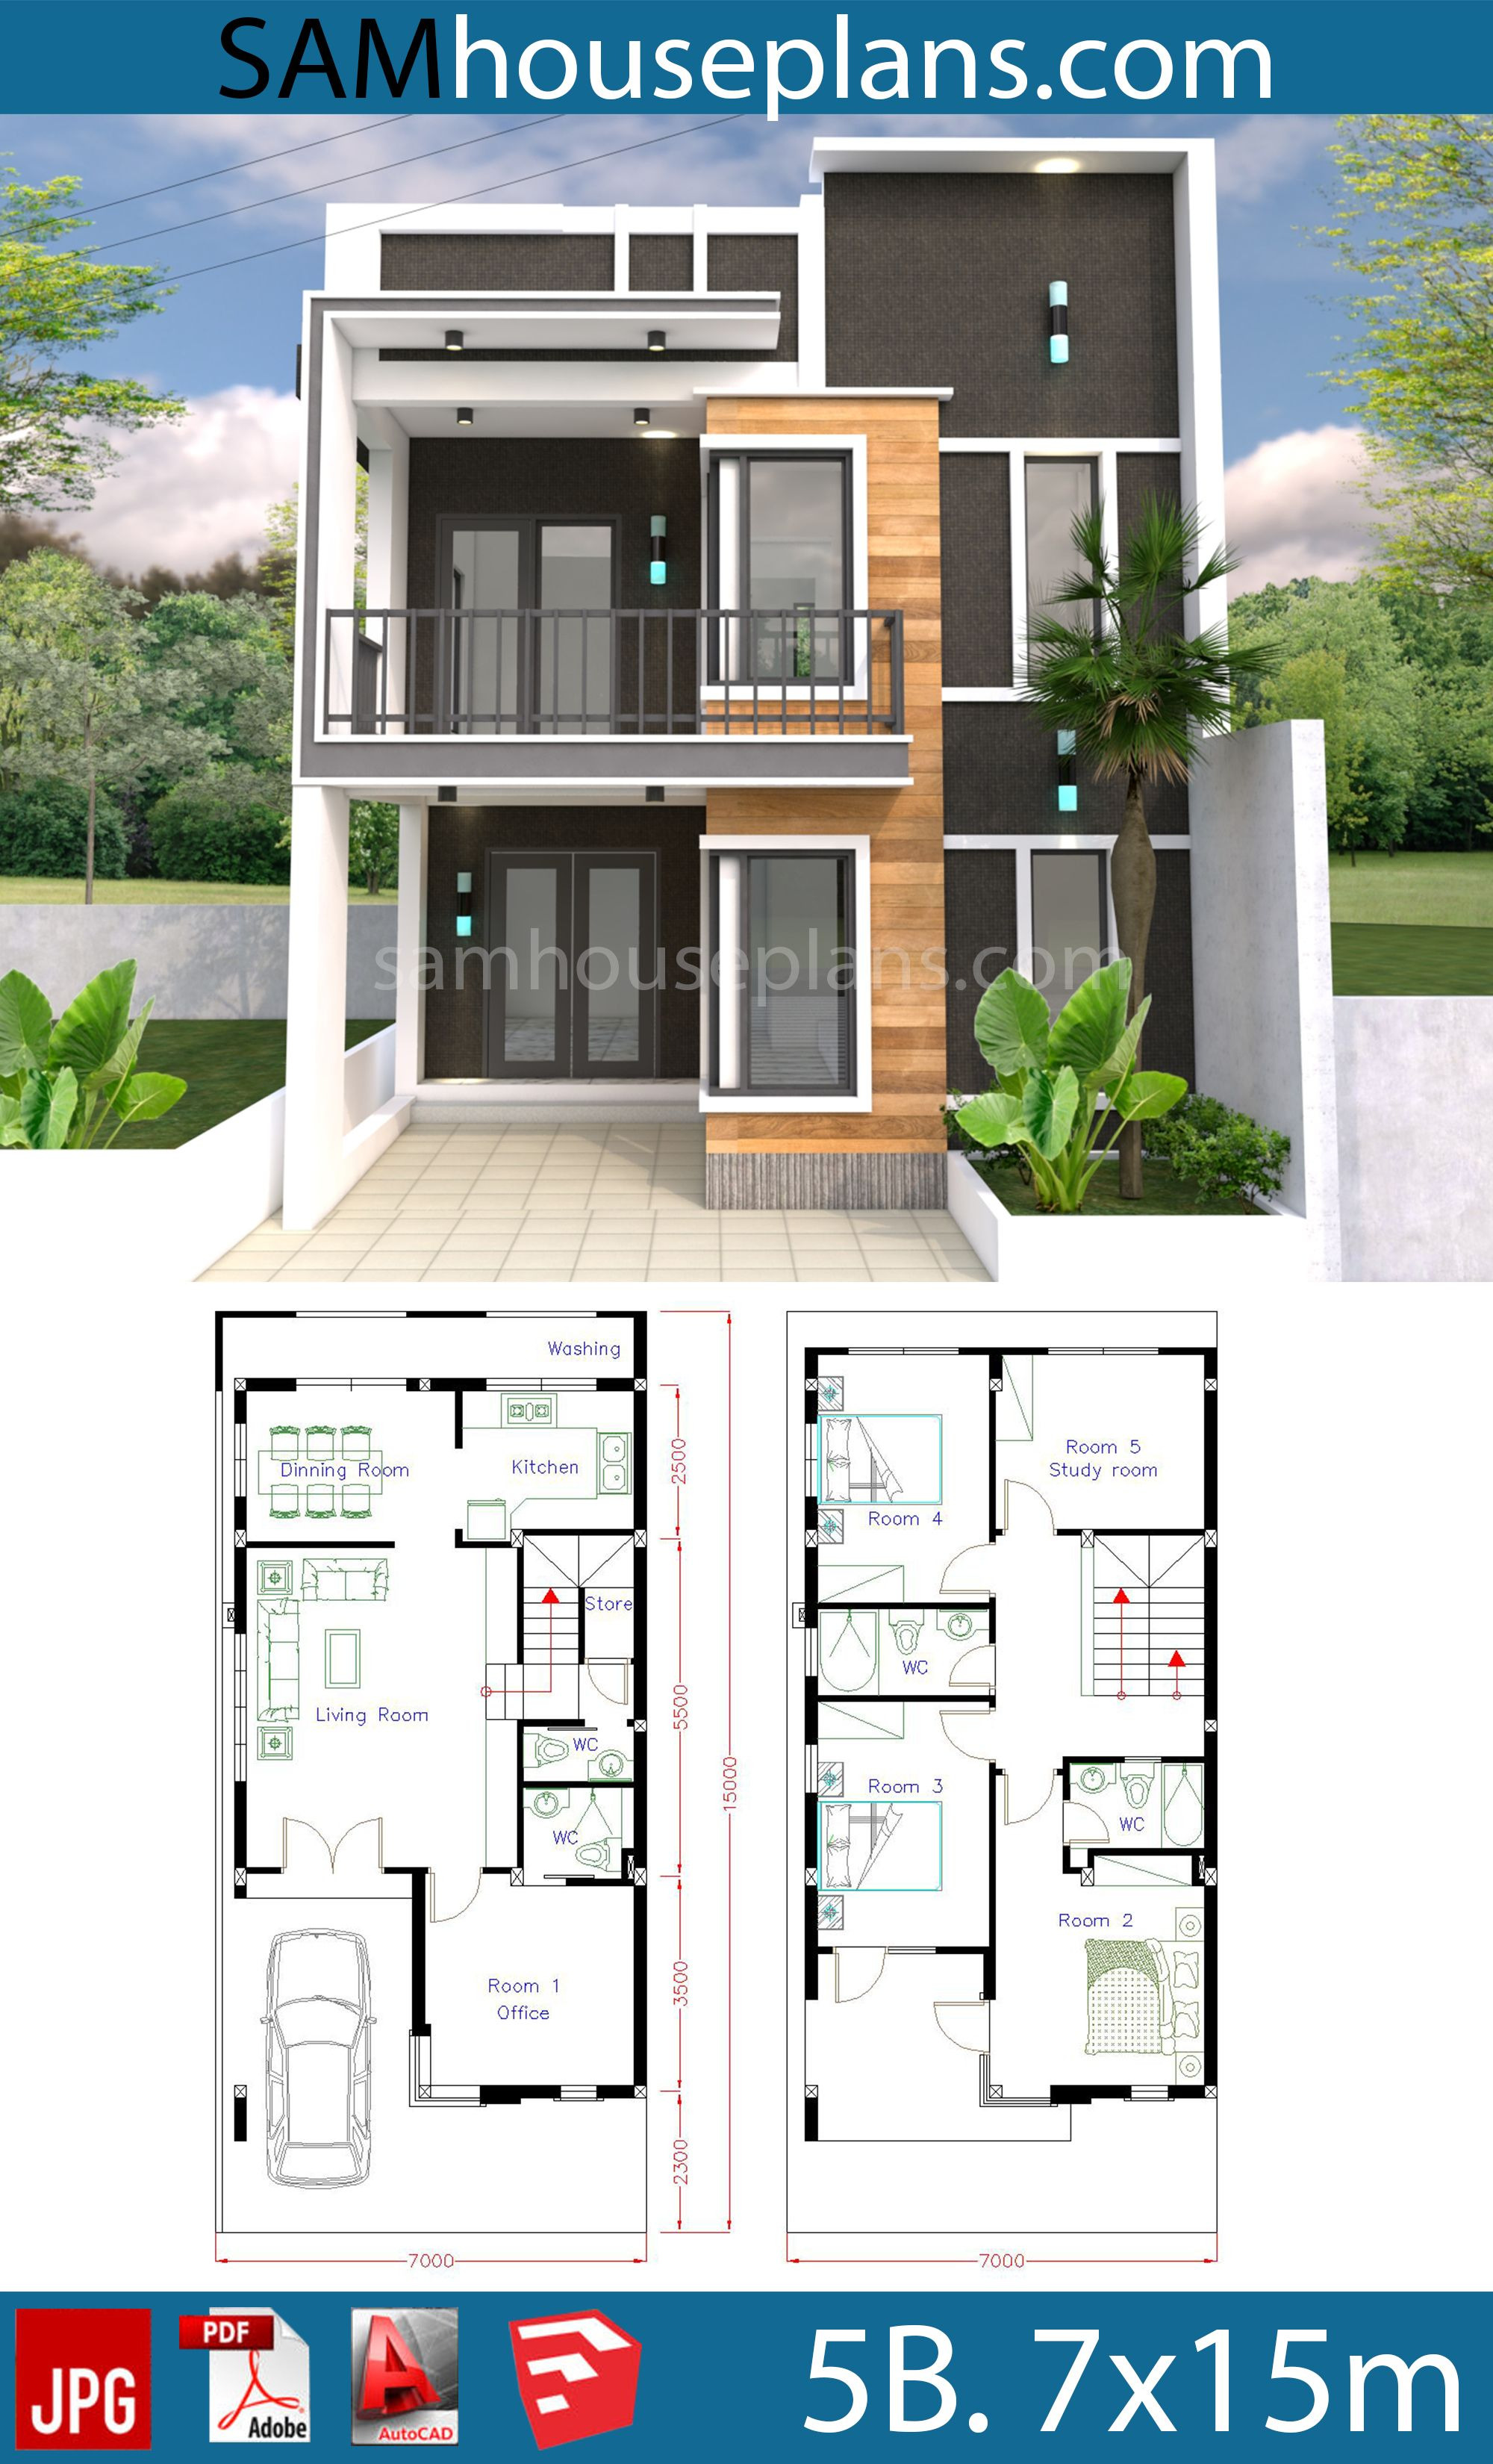 House Plans for Duplexes Three Bedroom Unique House Plans 7x15m with 4 Bedrooms